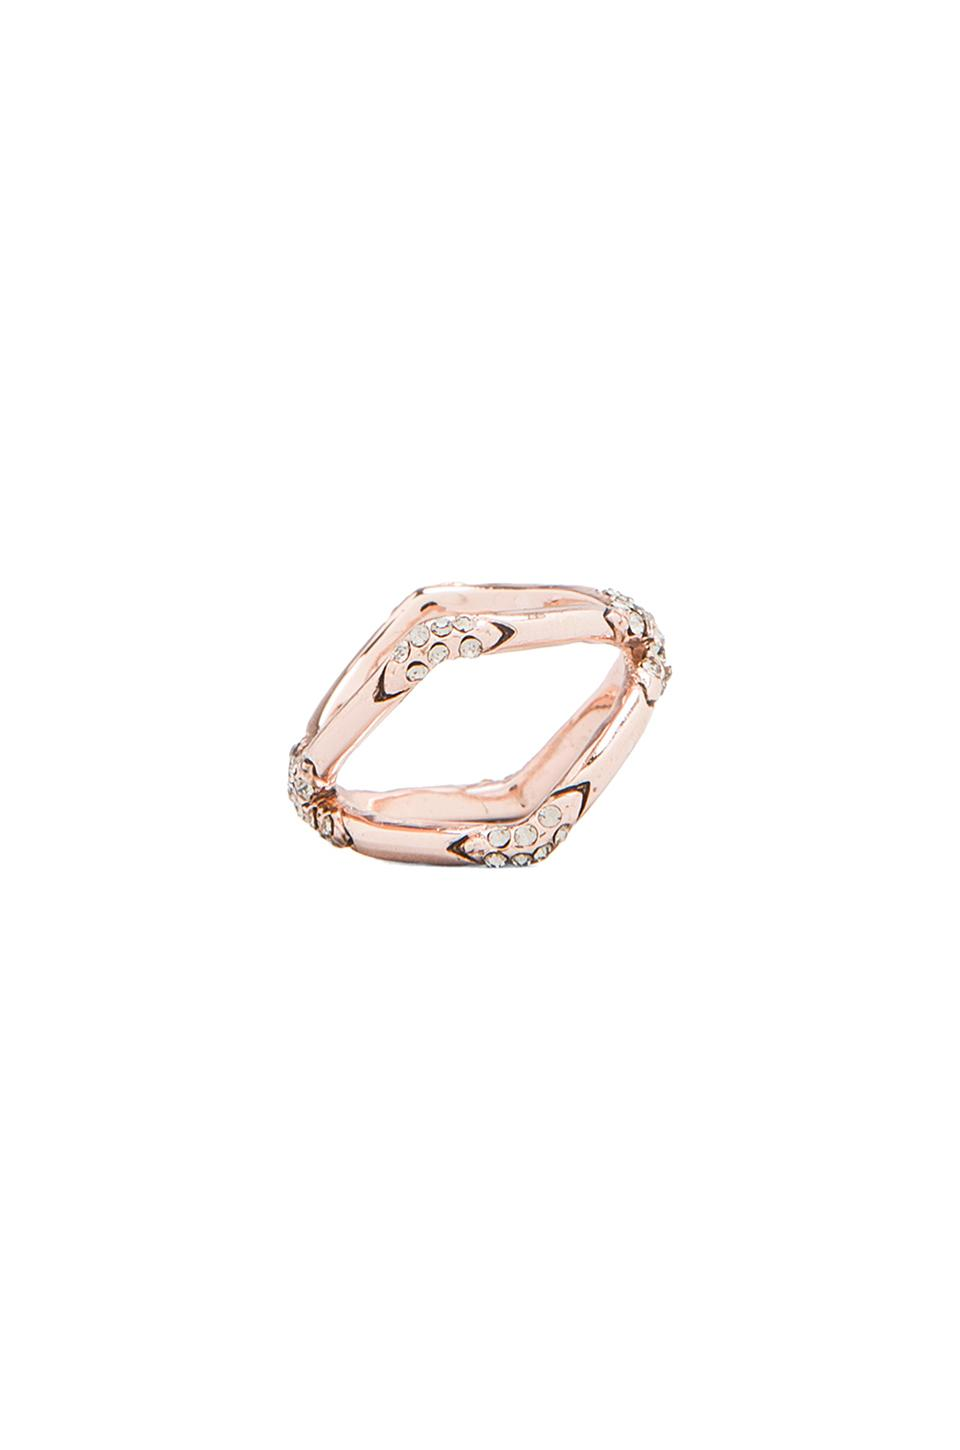 House of Harlow Sound Waves Ring in Rose Gold